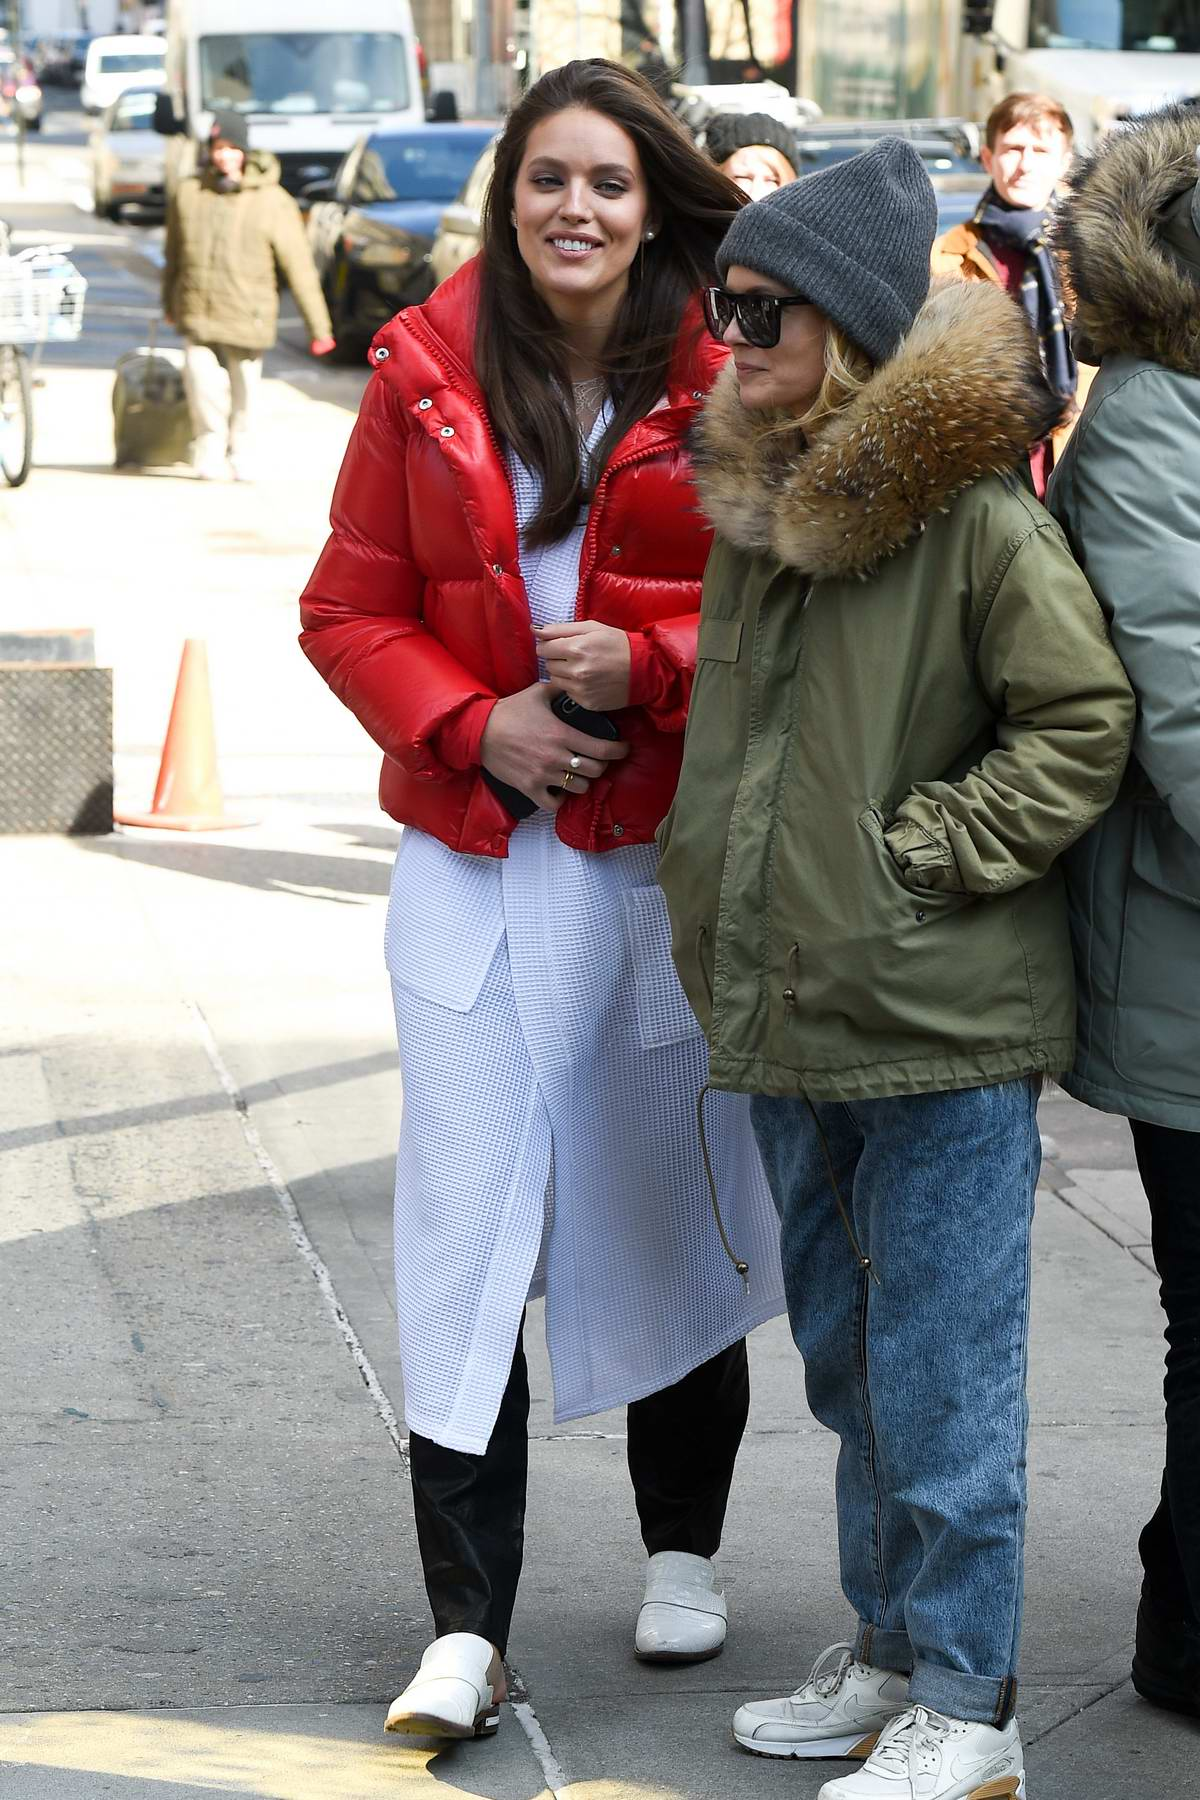 Emily DiDonato is all smiles as she takes a break while on the set of a Maybelline photoshoot in New York City